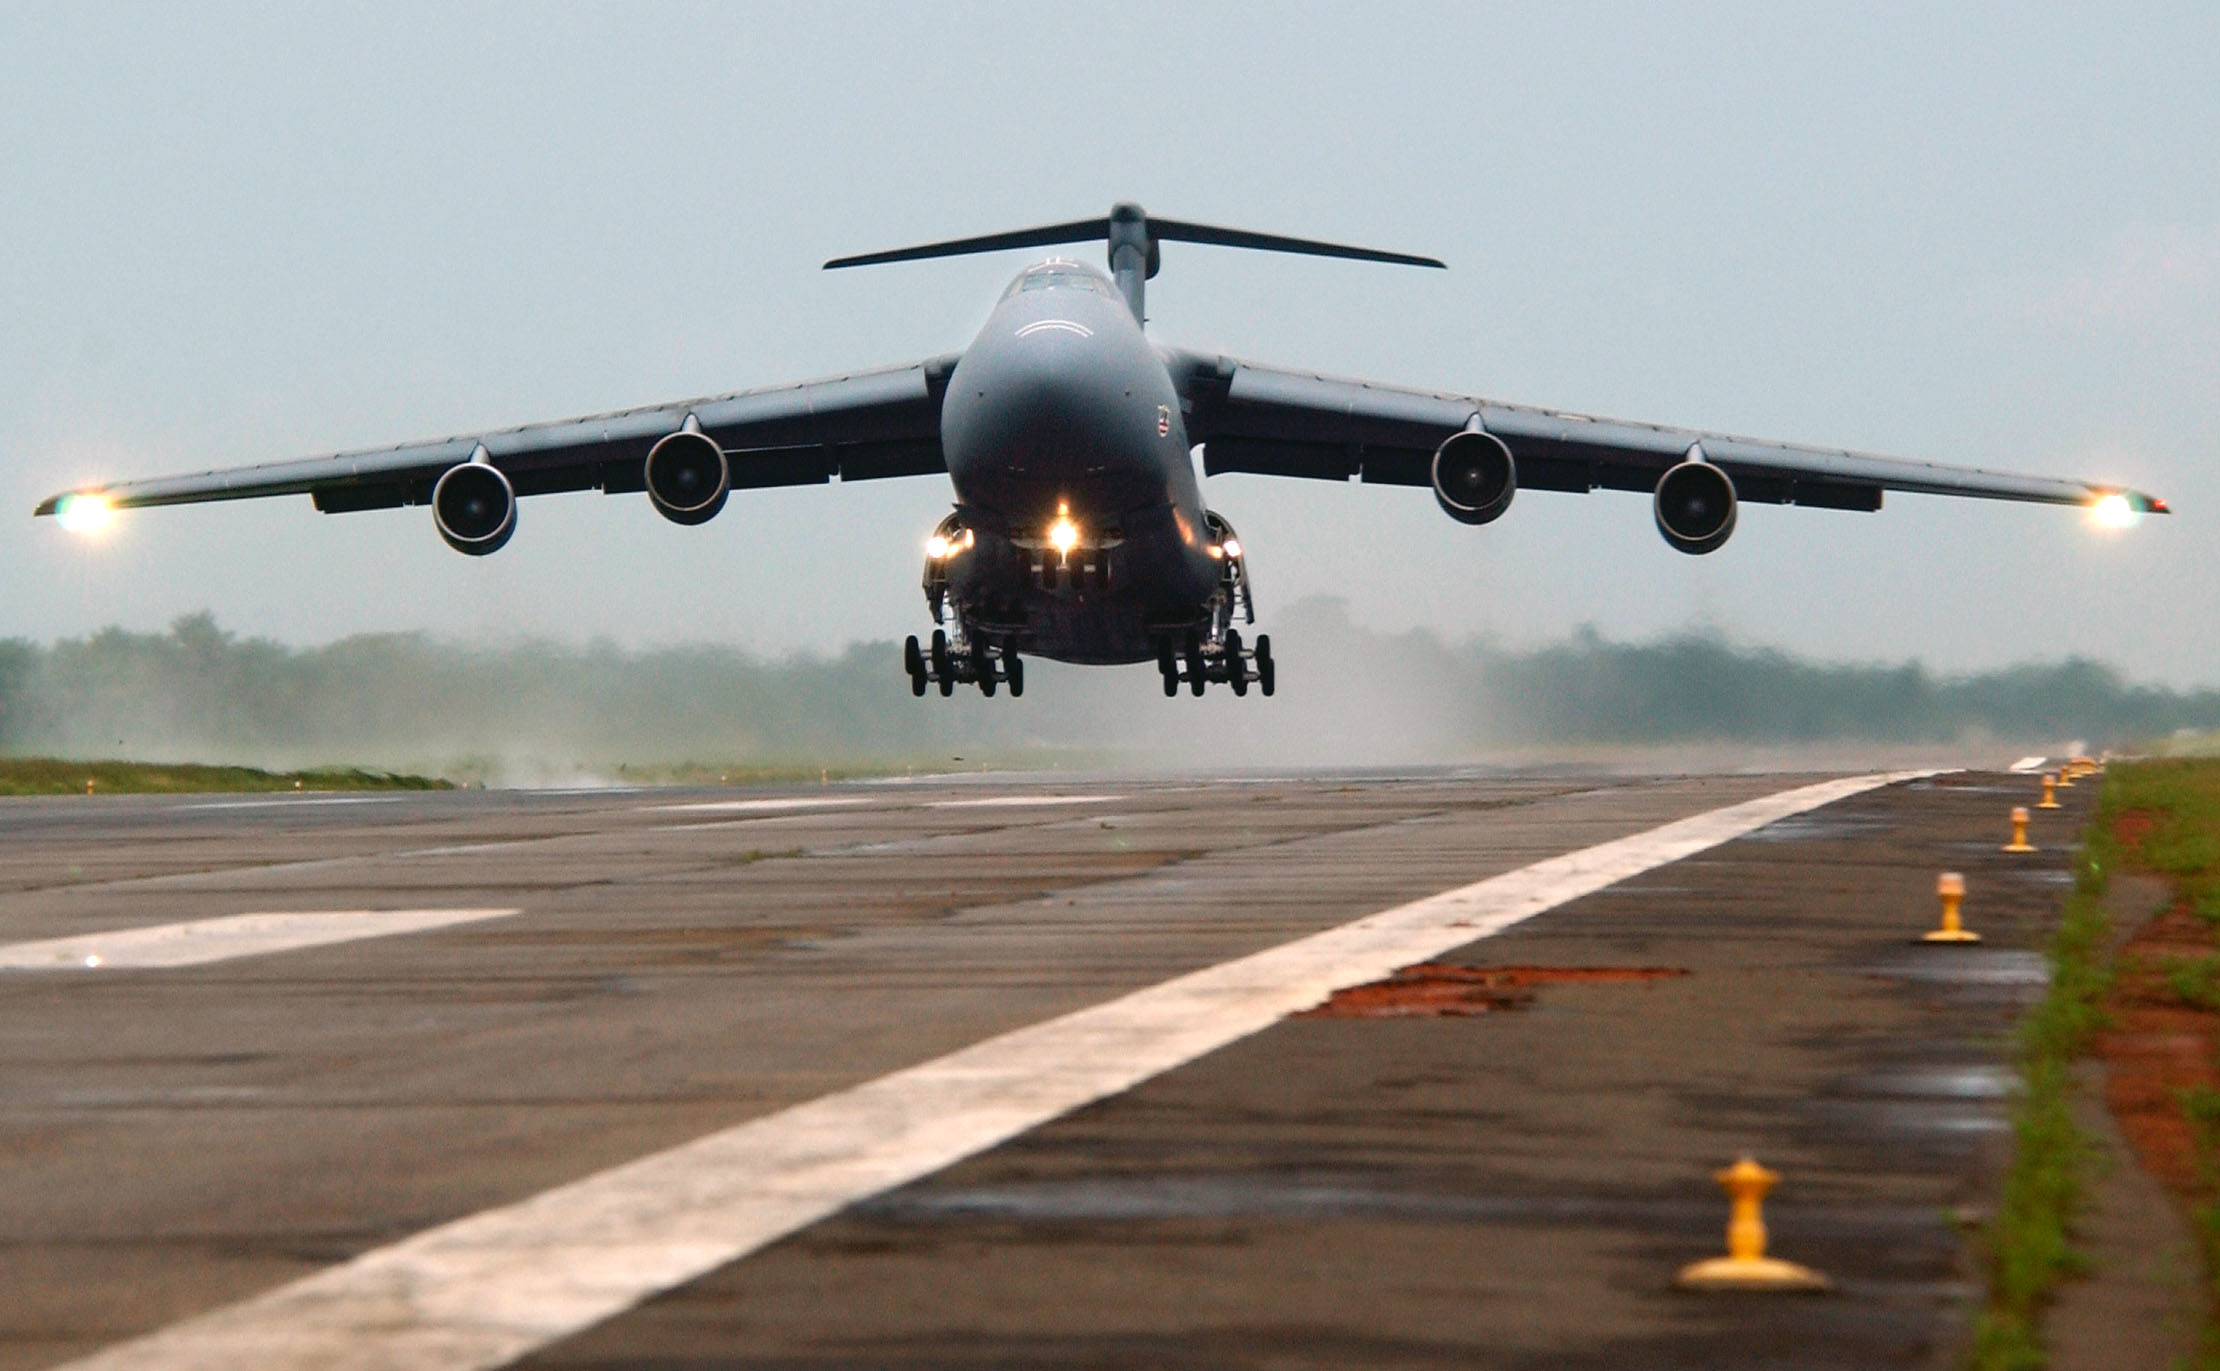 http://upload.wikimedia.org/wikipedia/commons/1/15/Lockheed_C-5_Galaxy_take_off.jpg